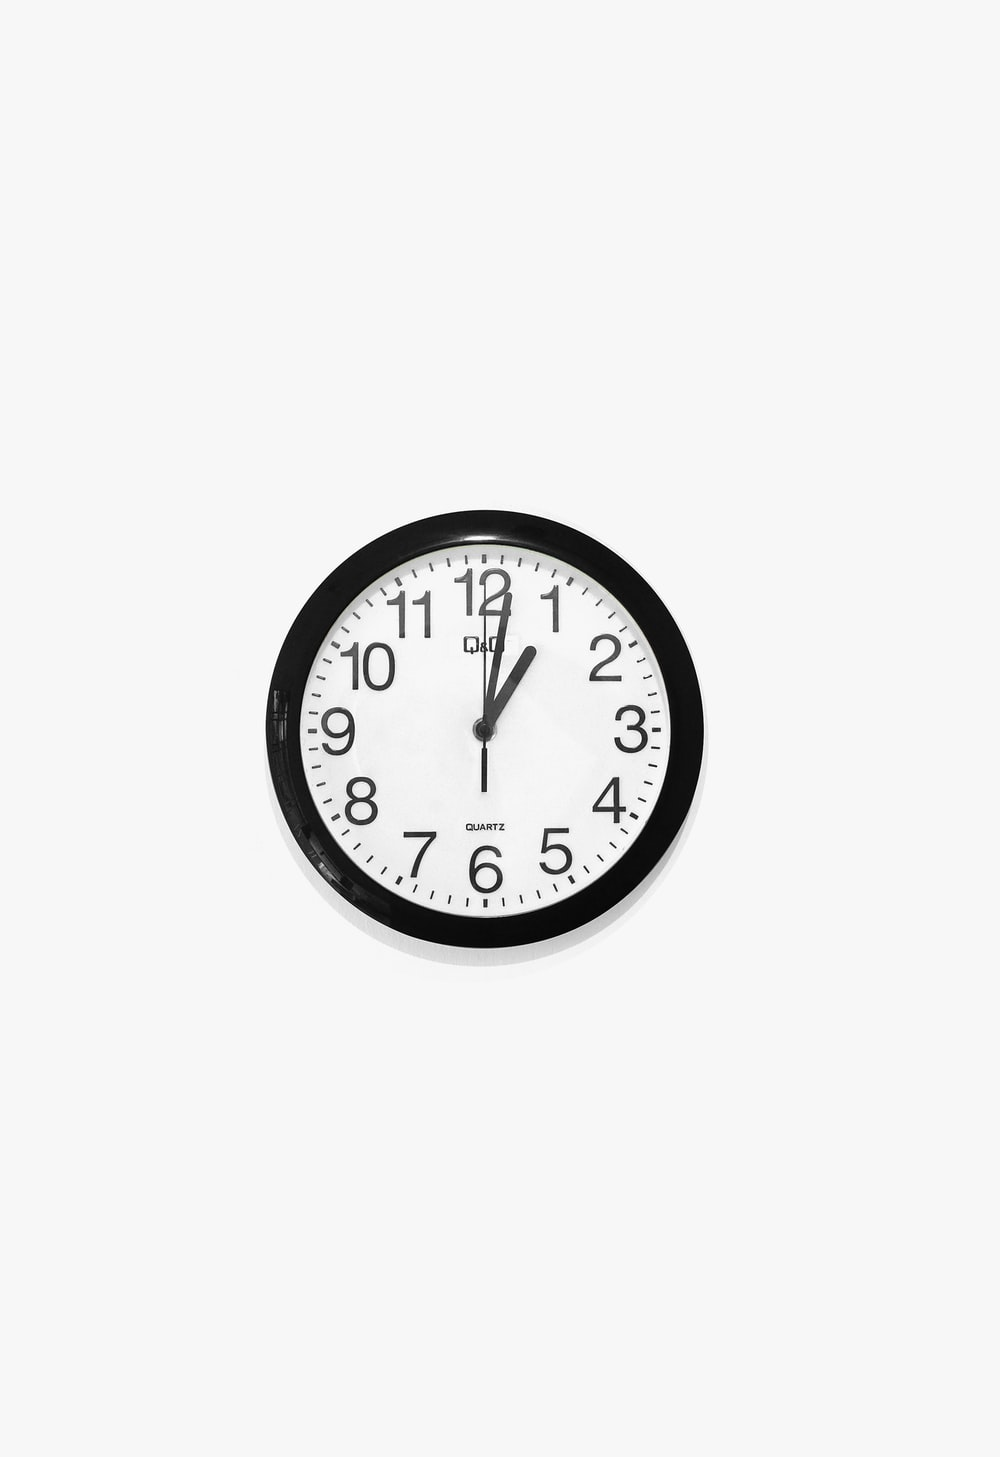 black and white round analog wall clock at 10 10